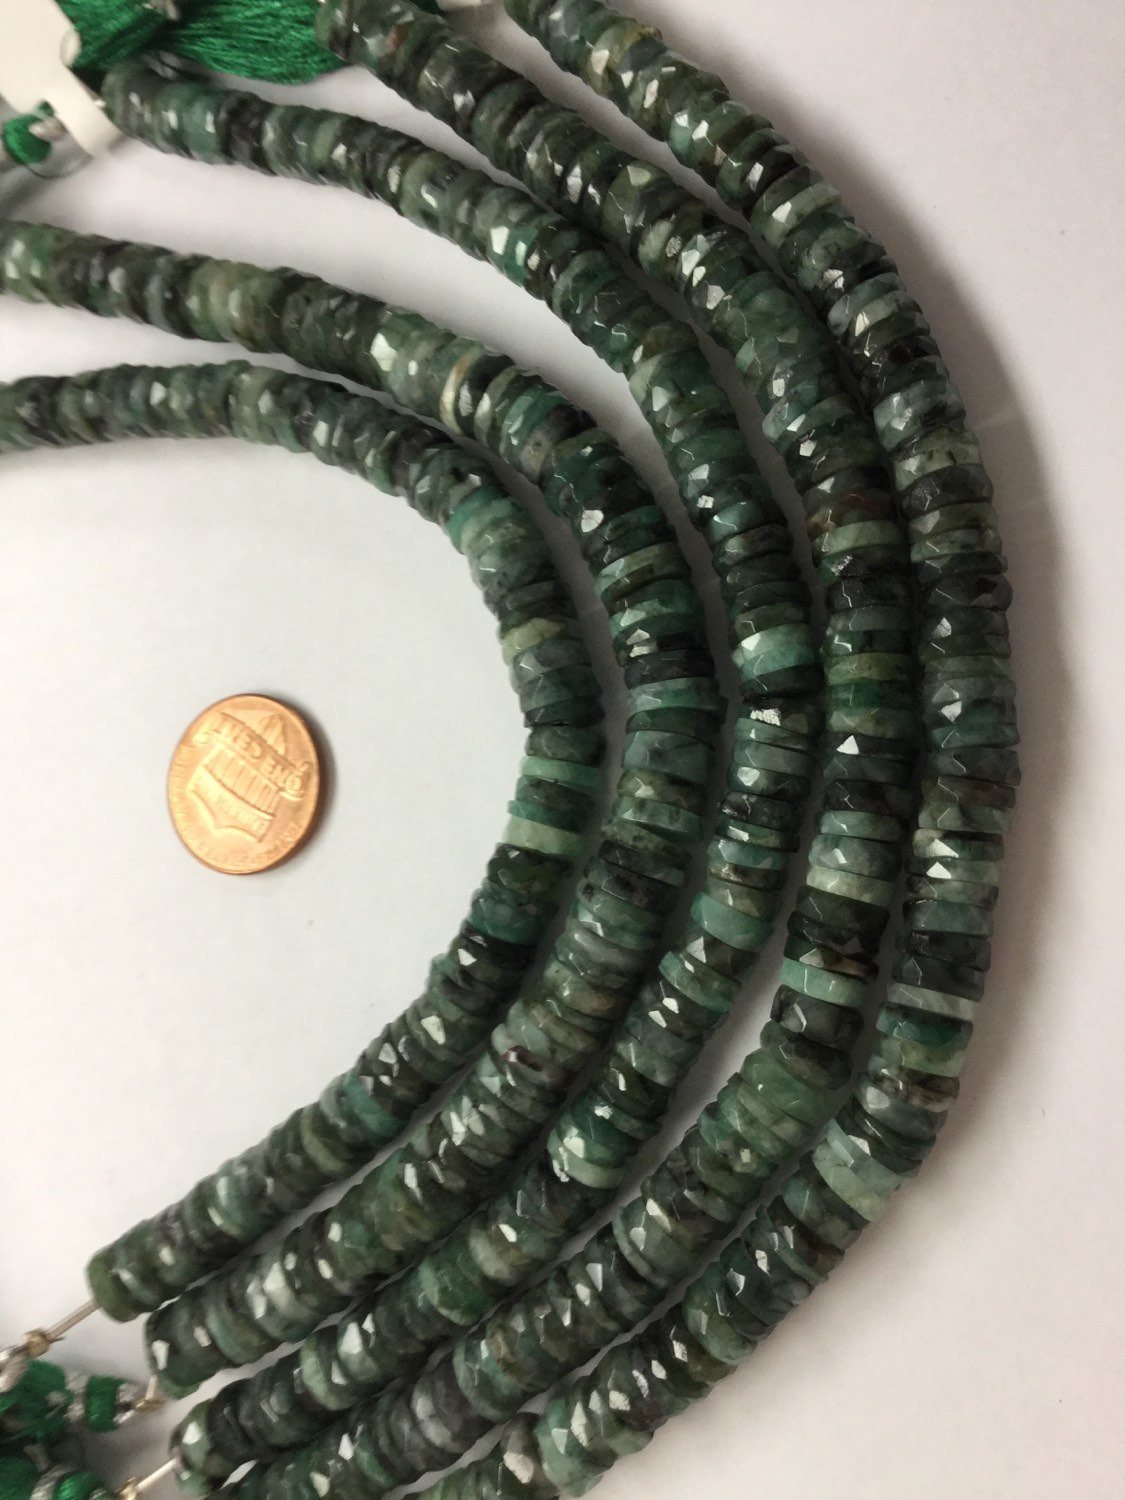 Zambian Emerald Tires Smooth